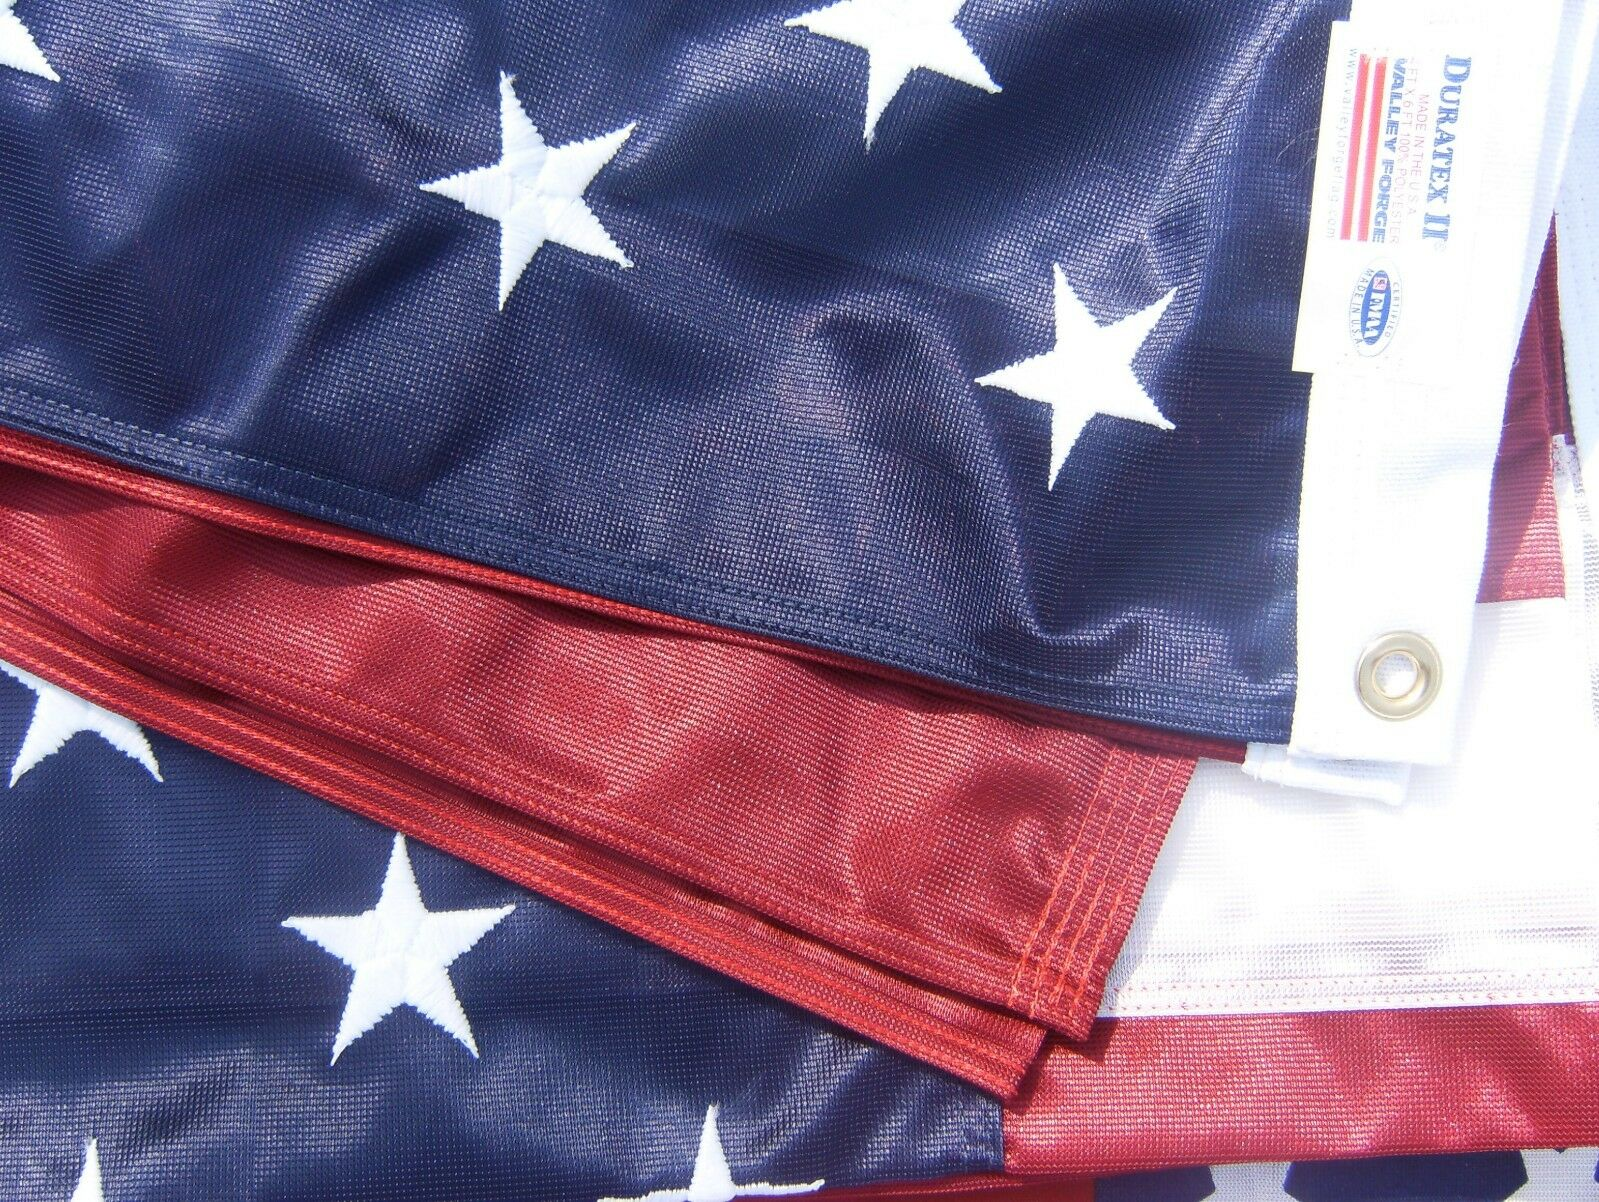 Valley Forge US American Flag 4'x6'  Duratex II Tricot Knit